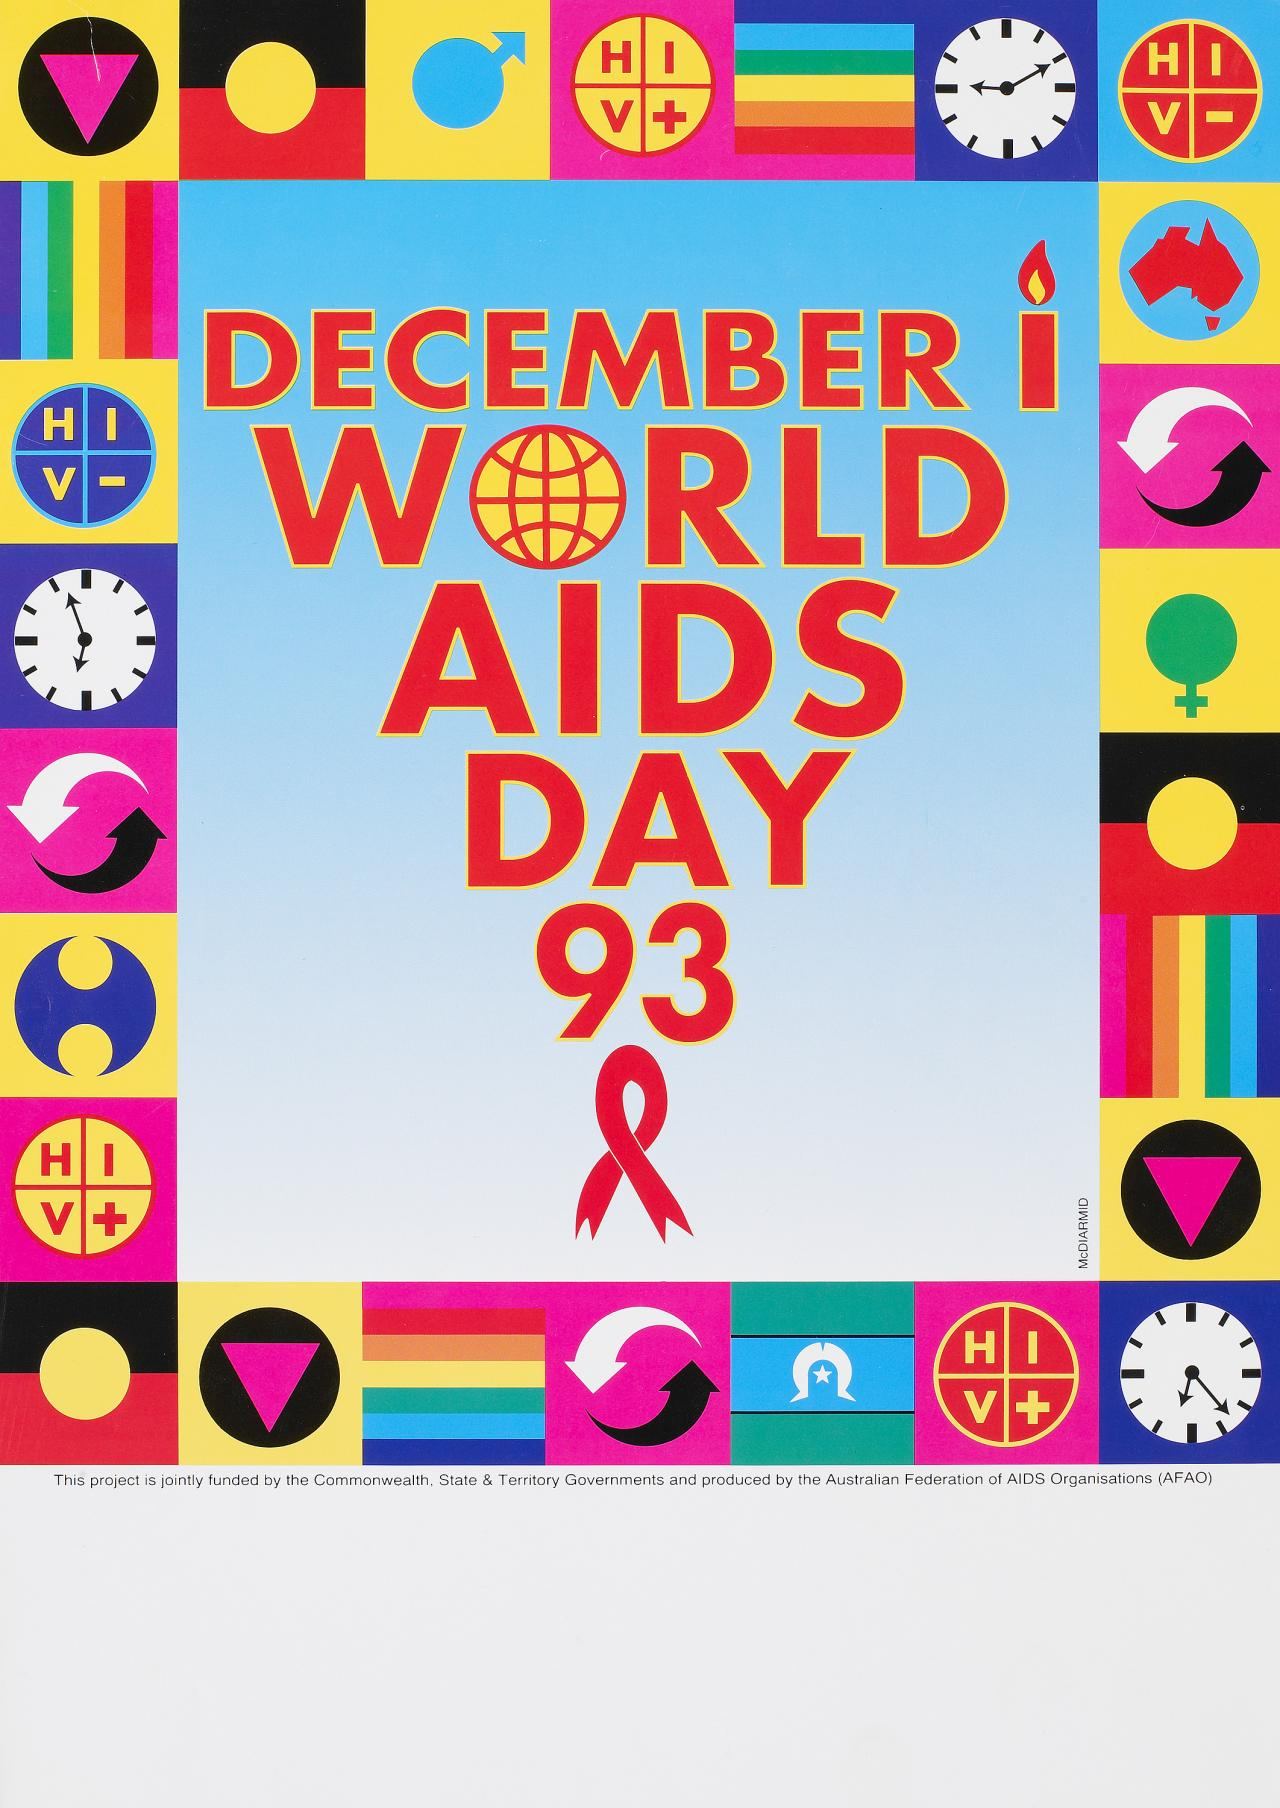 World AIDS Day 93